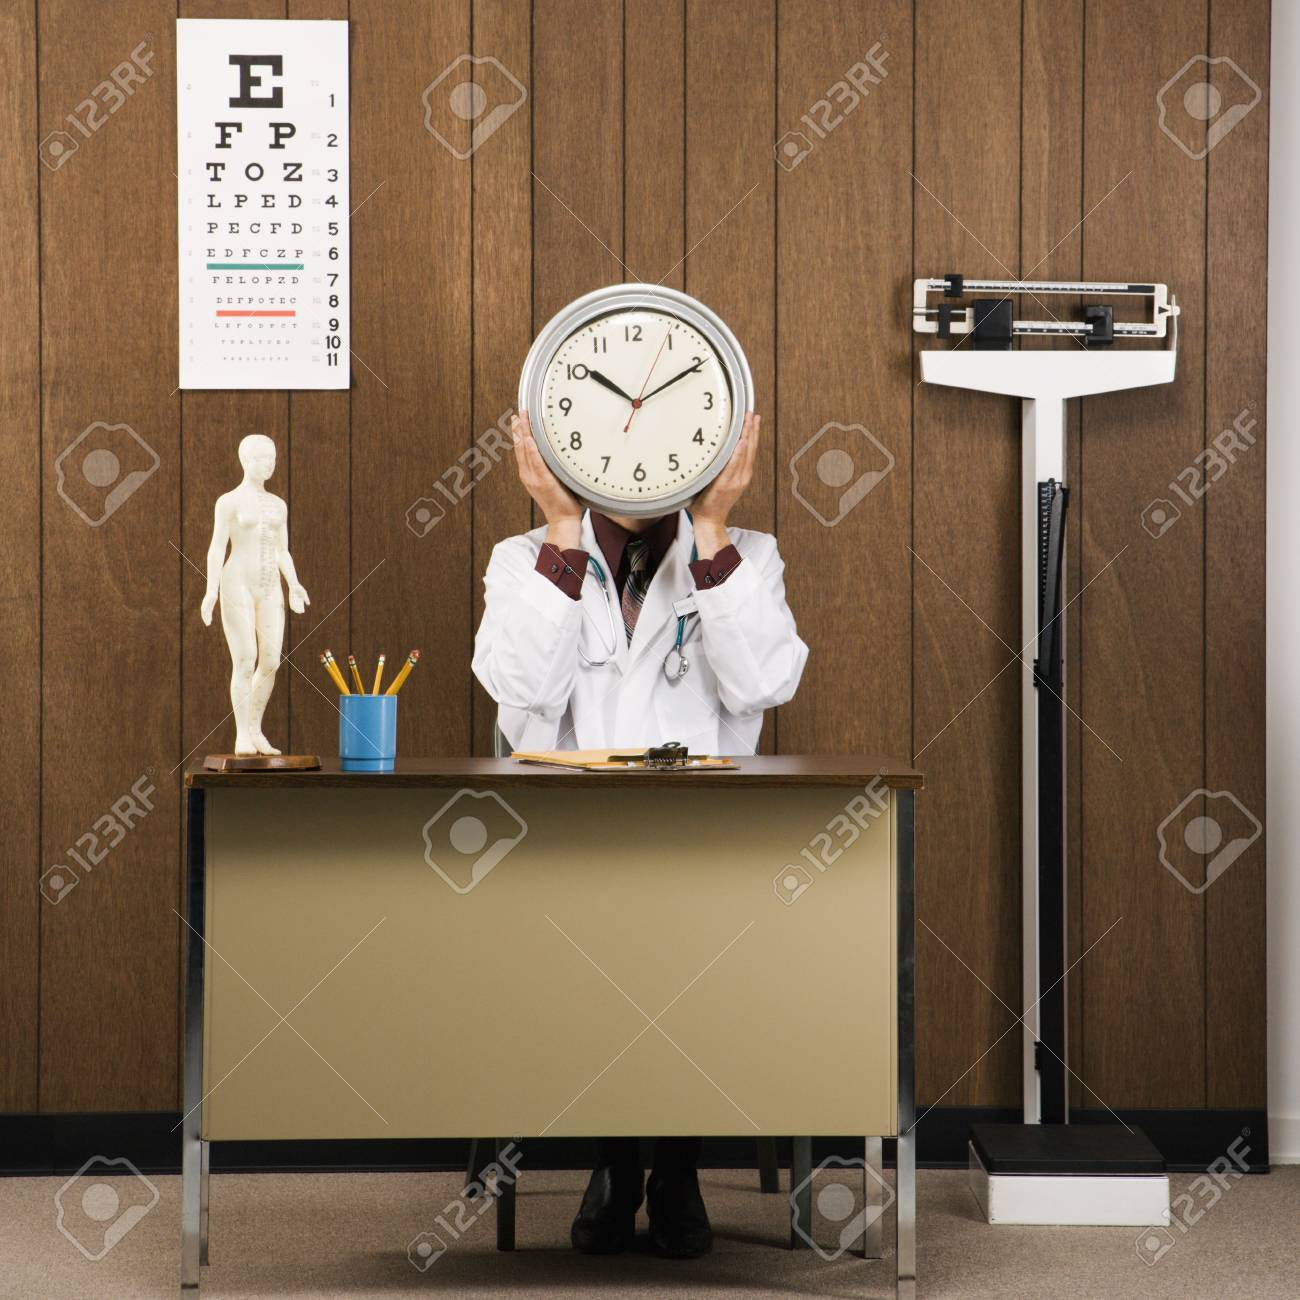 Caucasian male doctor sitting at desk holding clock over face. Stock Photo - 1934101